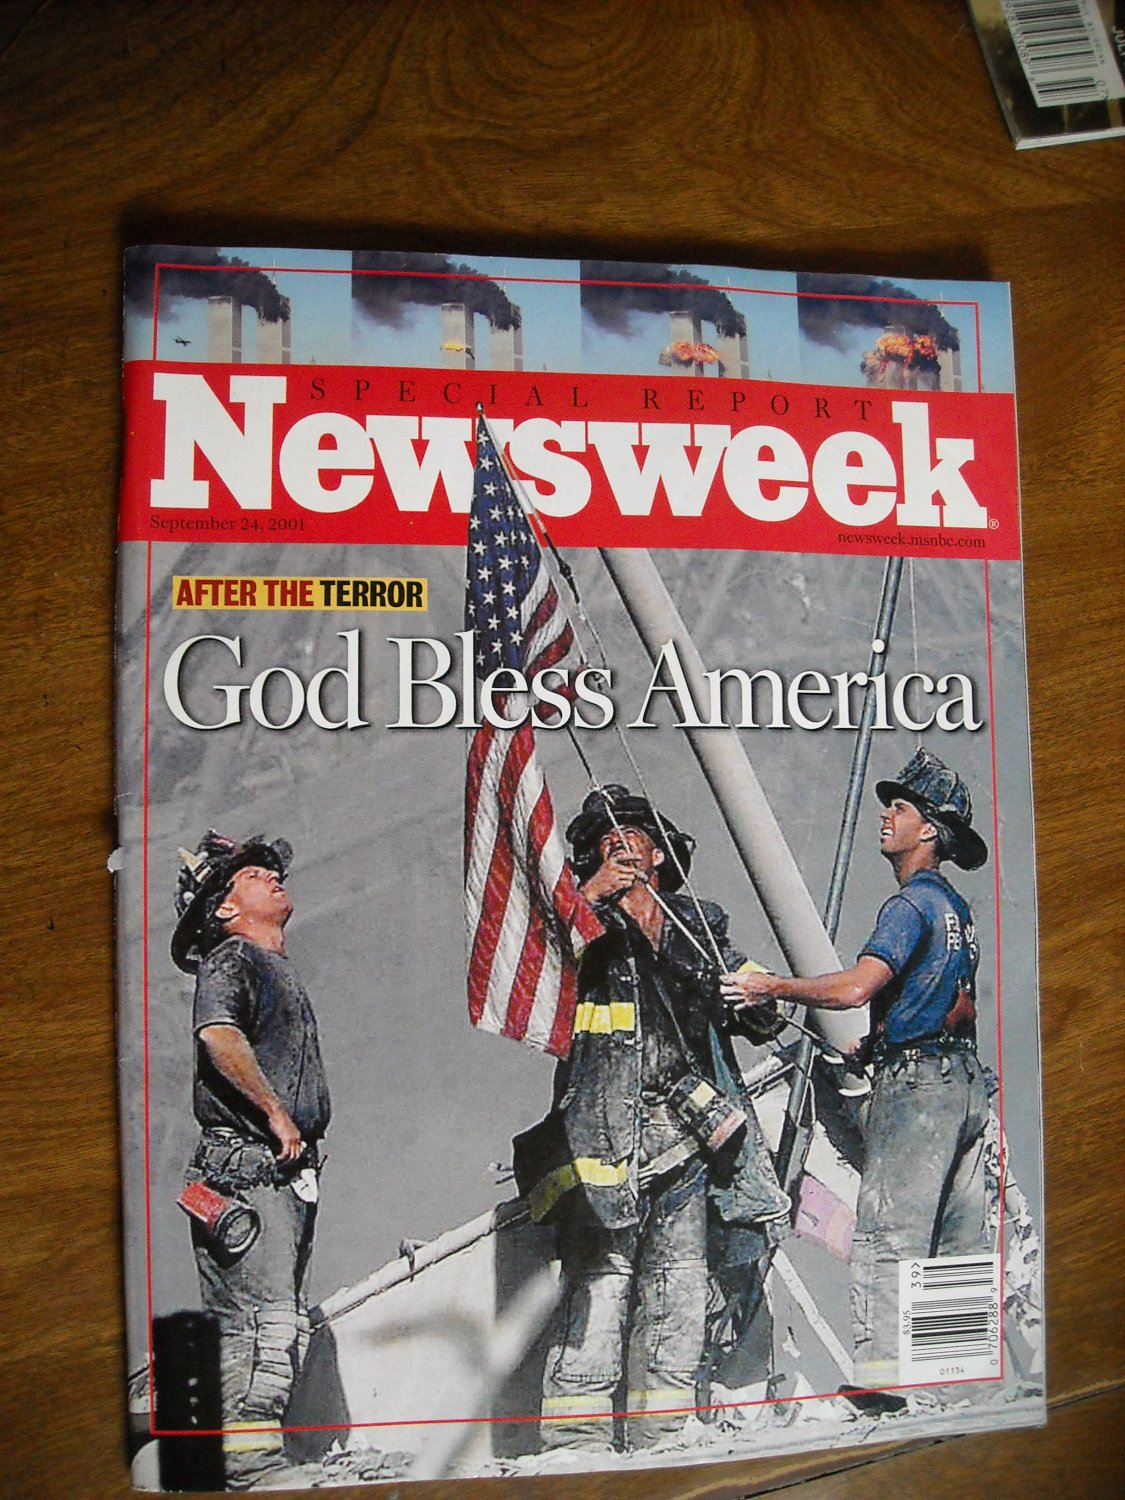 Newsweek Special Report September 2001 - After the Terror - God Bless America - 9/11 Report